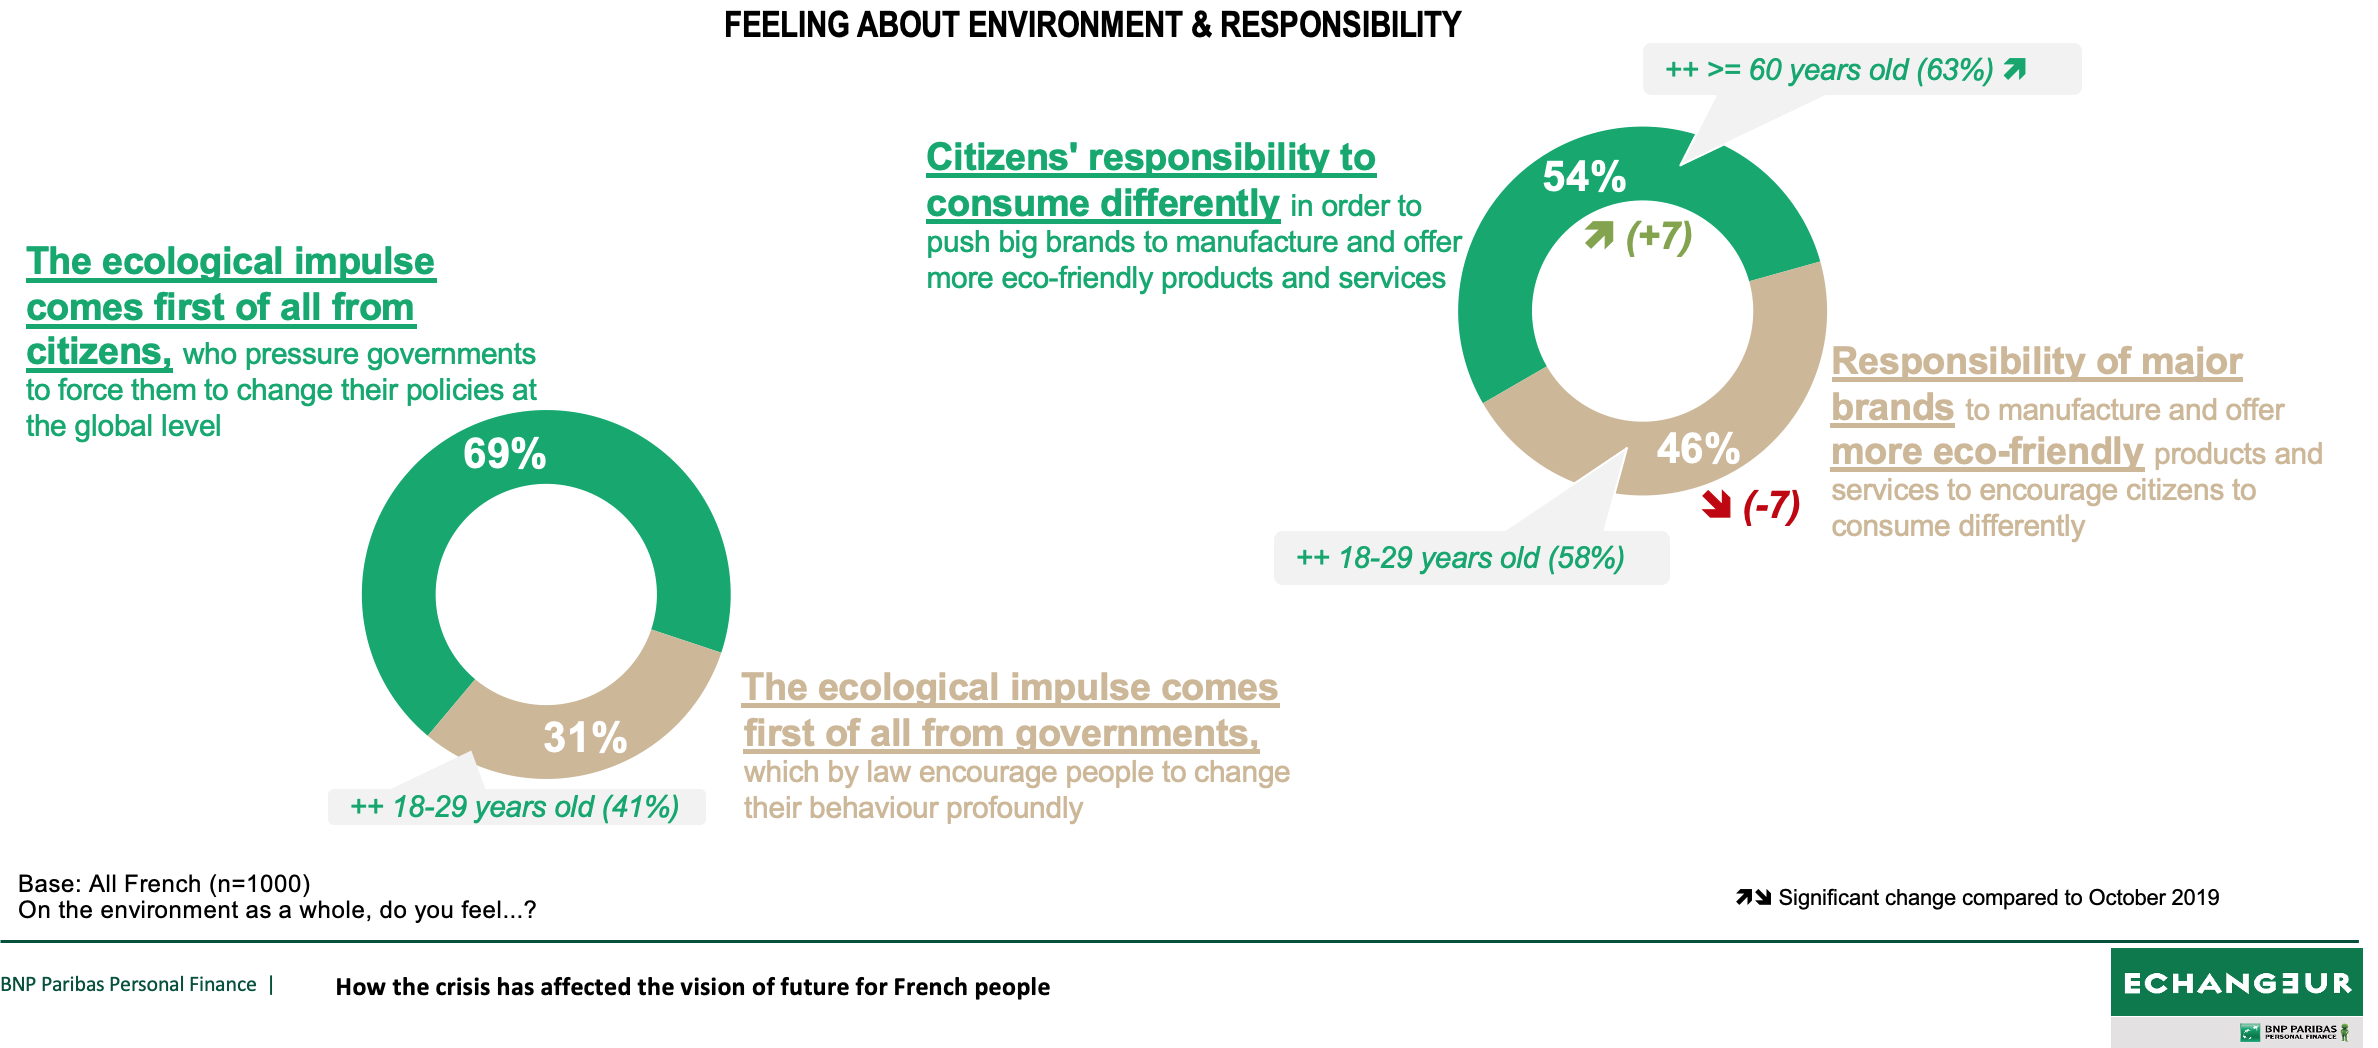 Feeling about environment & responsibility